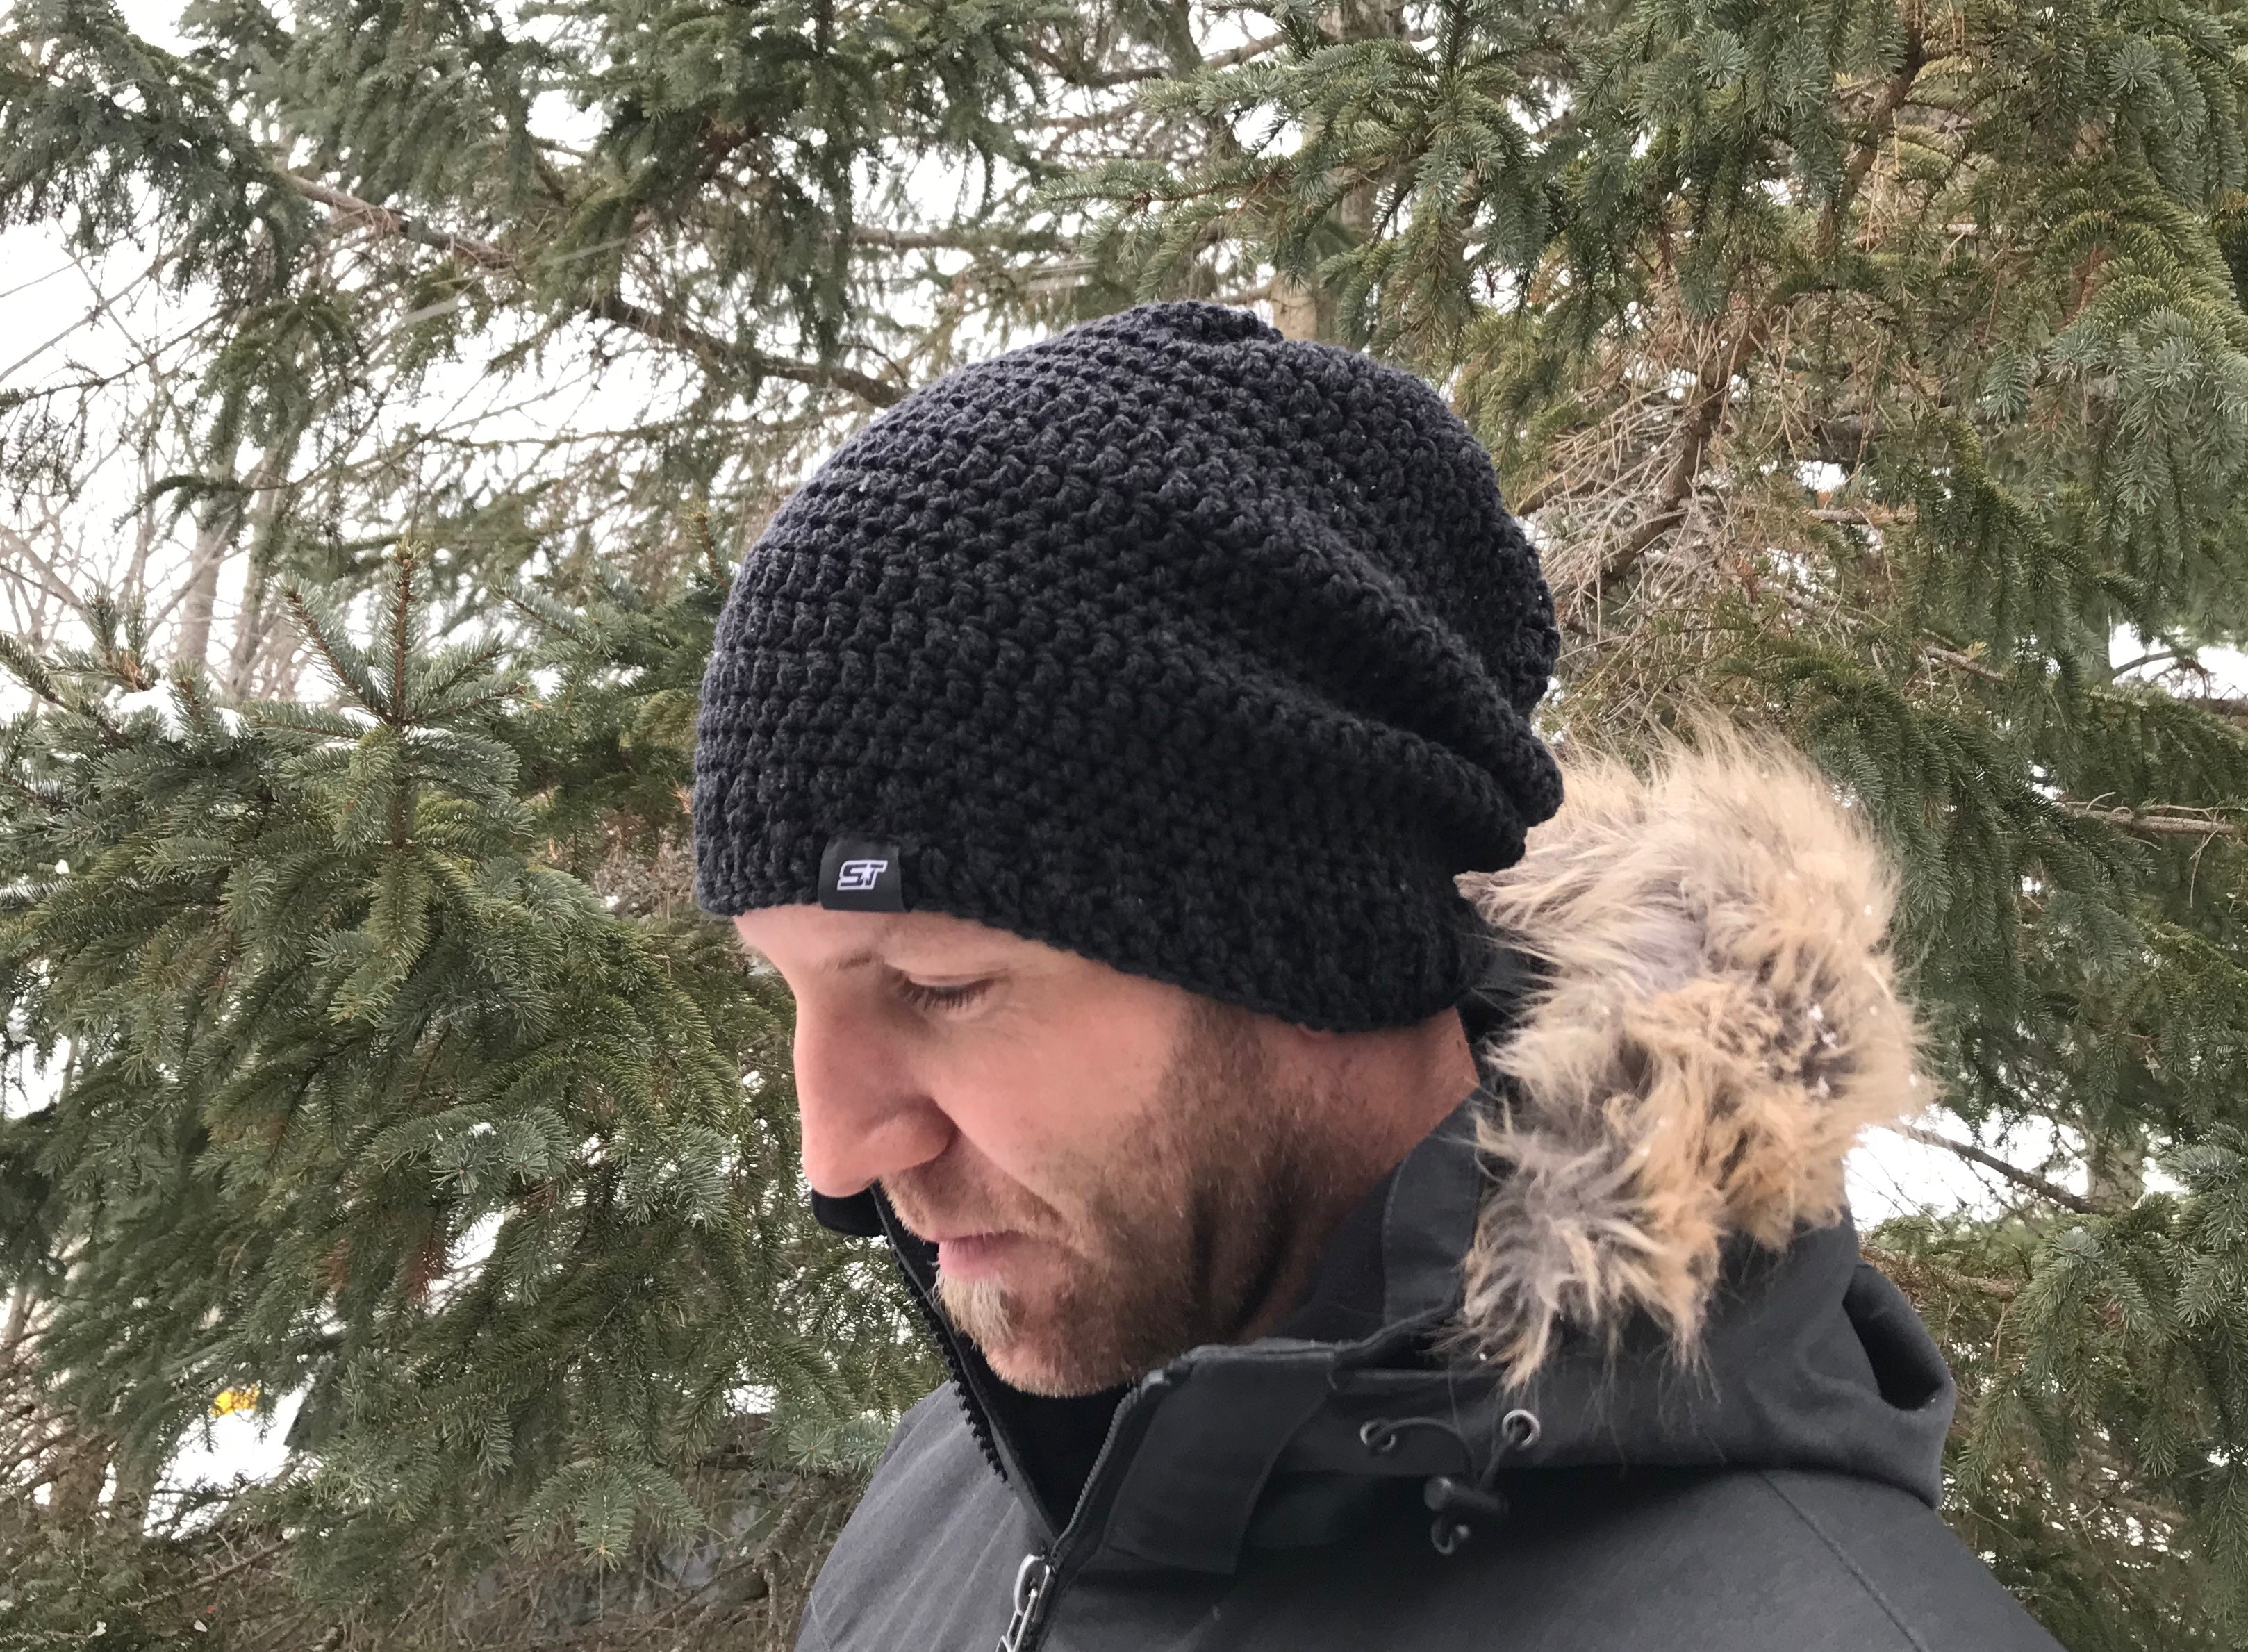 ST Hand Knit Toque (CHARCOAL) by Sherri-Lynn